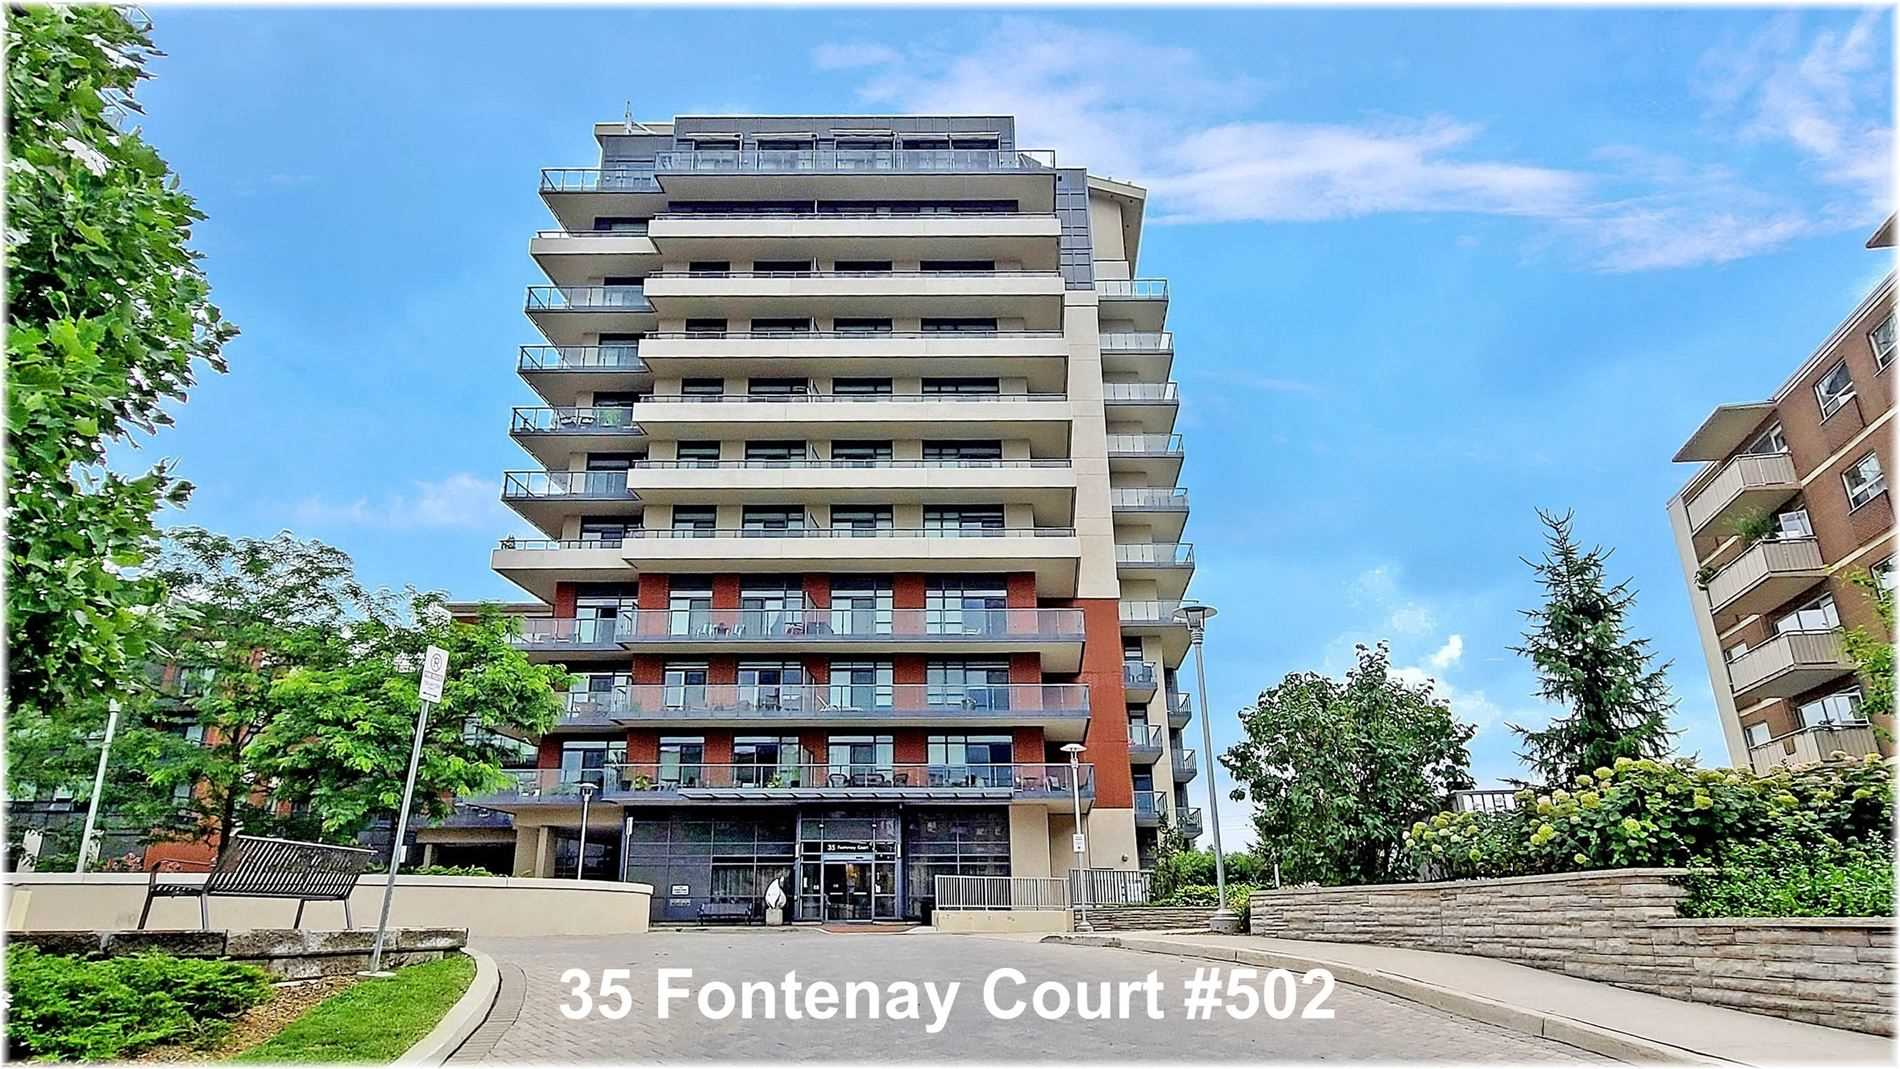 35 Fontenay Crt, Toronto, Ontario M9A0C4, 1 Bedroom Bedrooms, 5 Rooms Rooms,1 BathroomBathrooms,Condo Apt,For Sale,Fontenay,W4930940